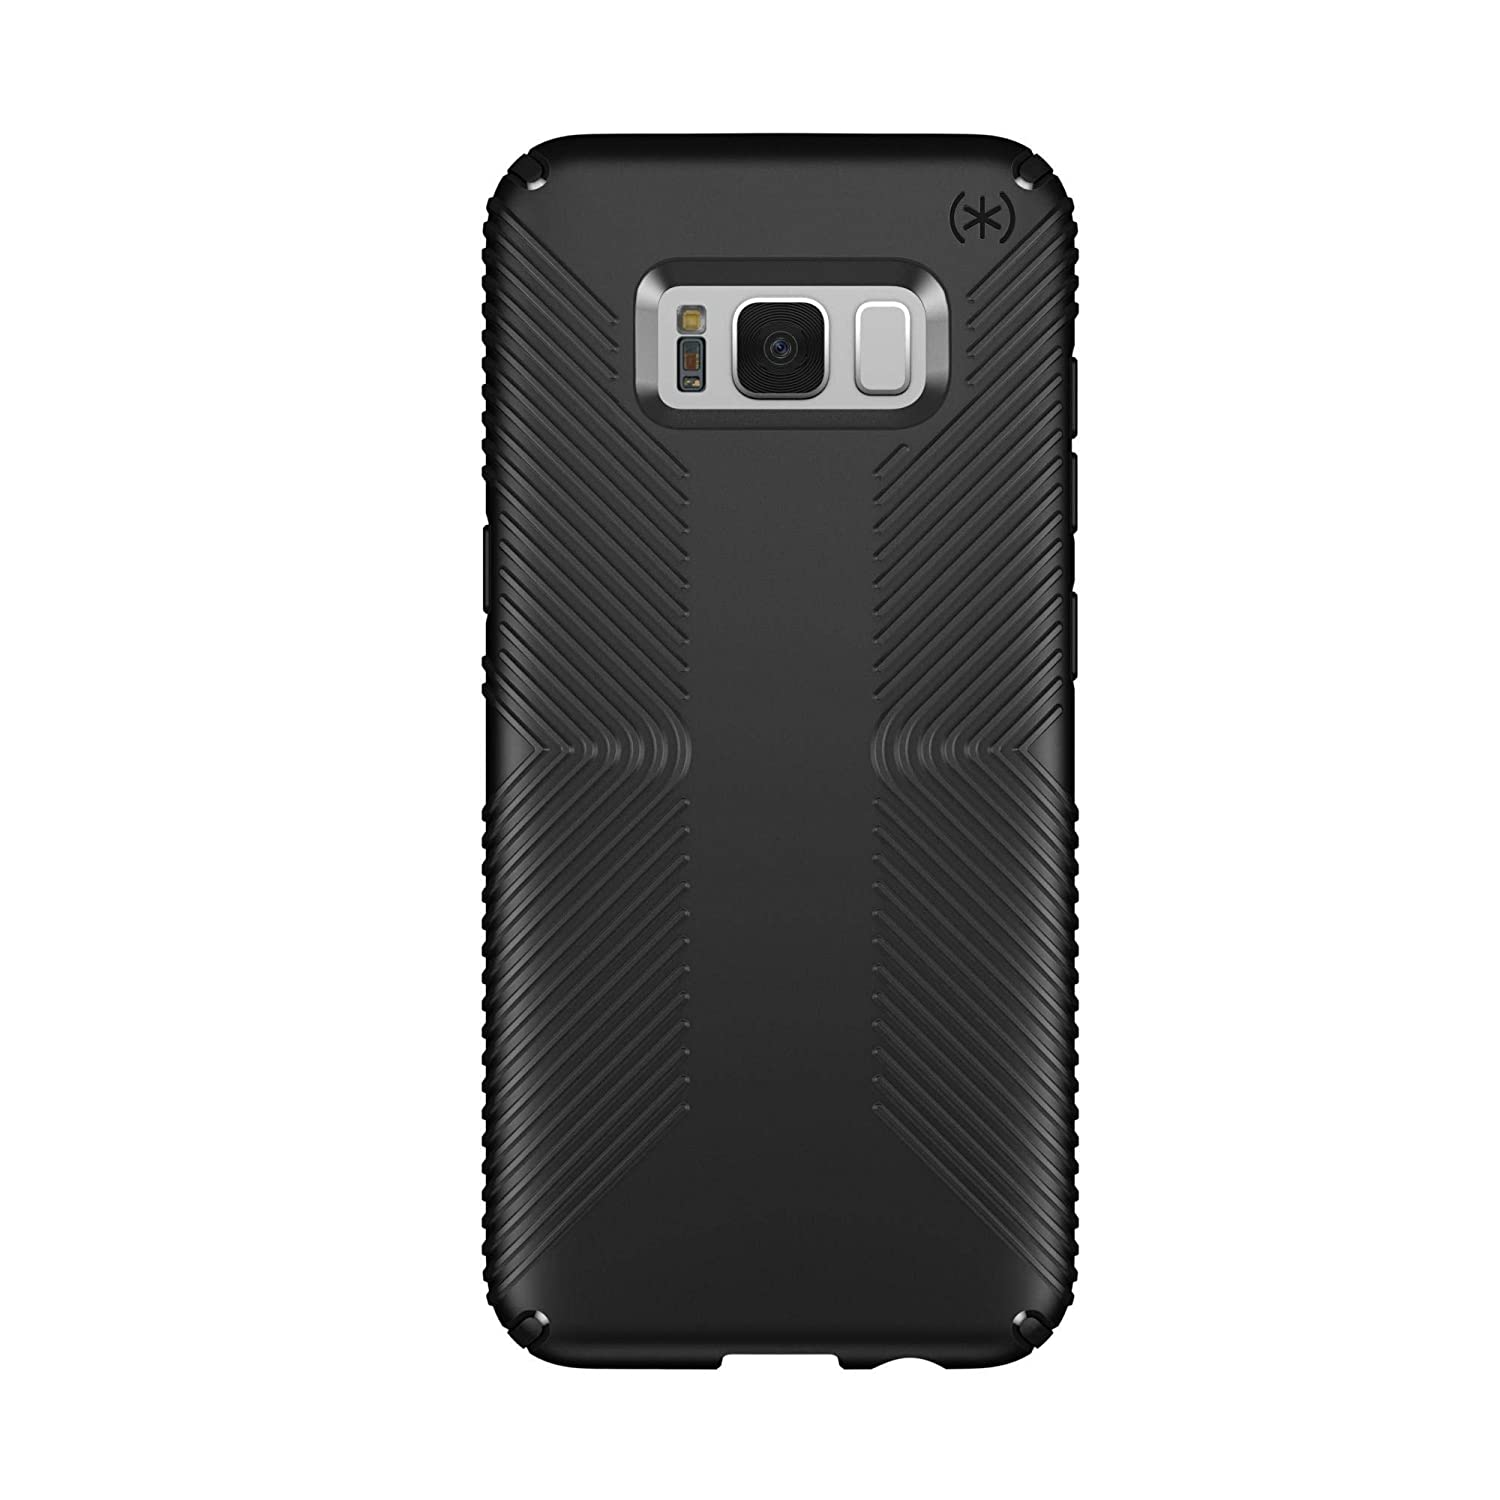 timeless design 15310 6203a Speck Products Presidio Grip Cell Phone Case for Samsung Galaxy S8 -  Black/Black